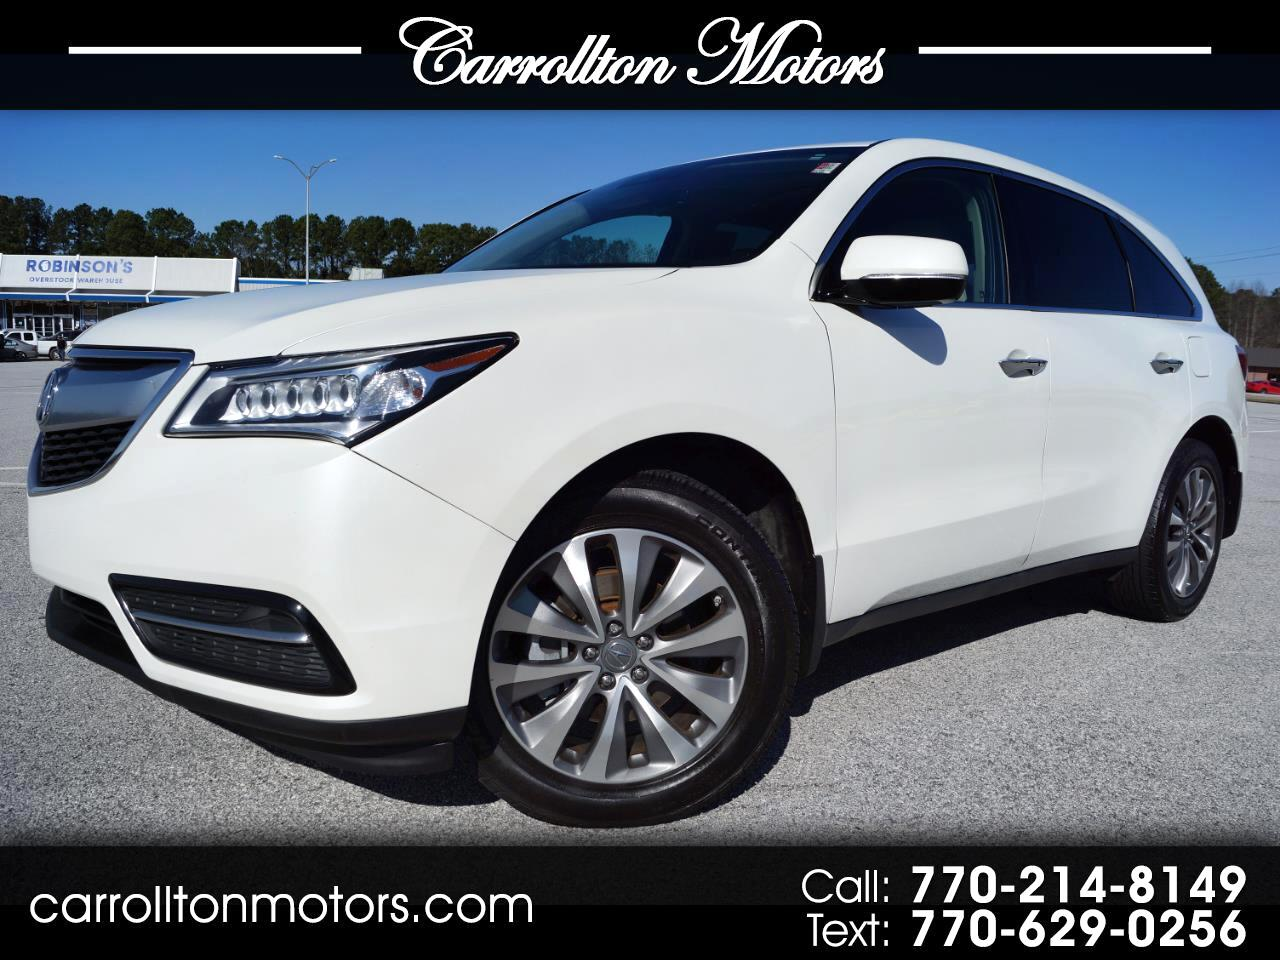 Acura MDX 9-Spd AT SH-AWD w/Tech & AcuraWatch Plus 2016